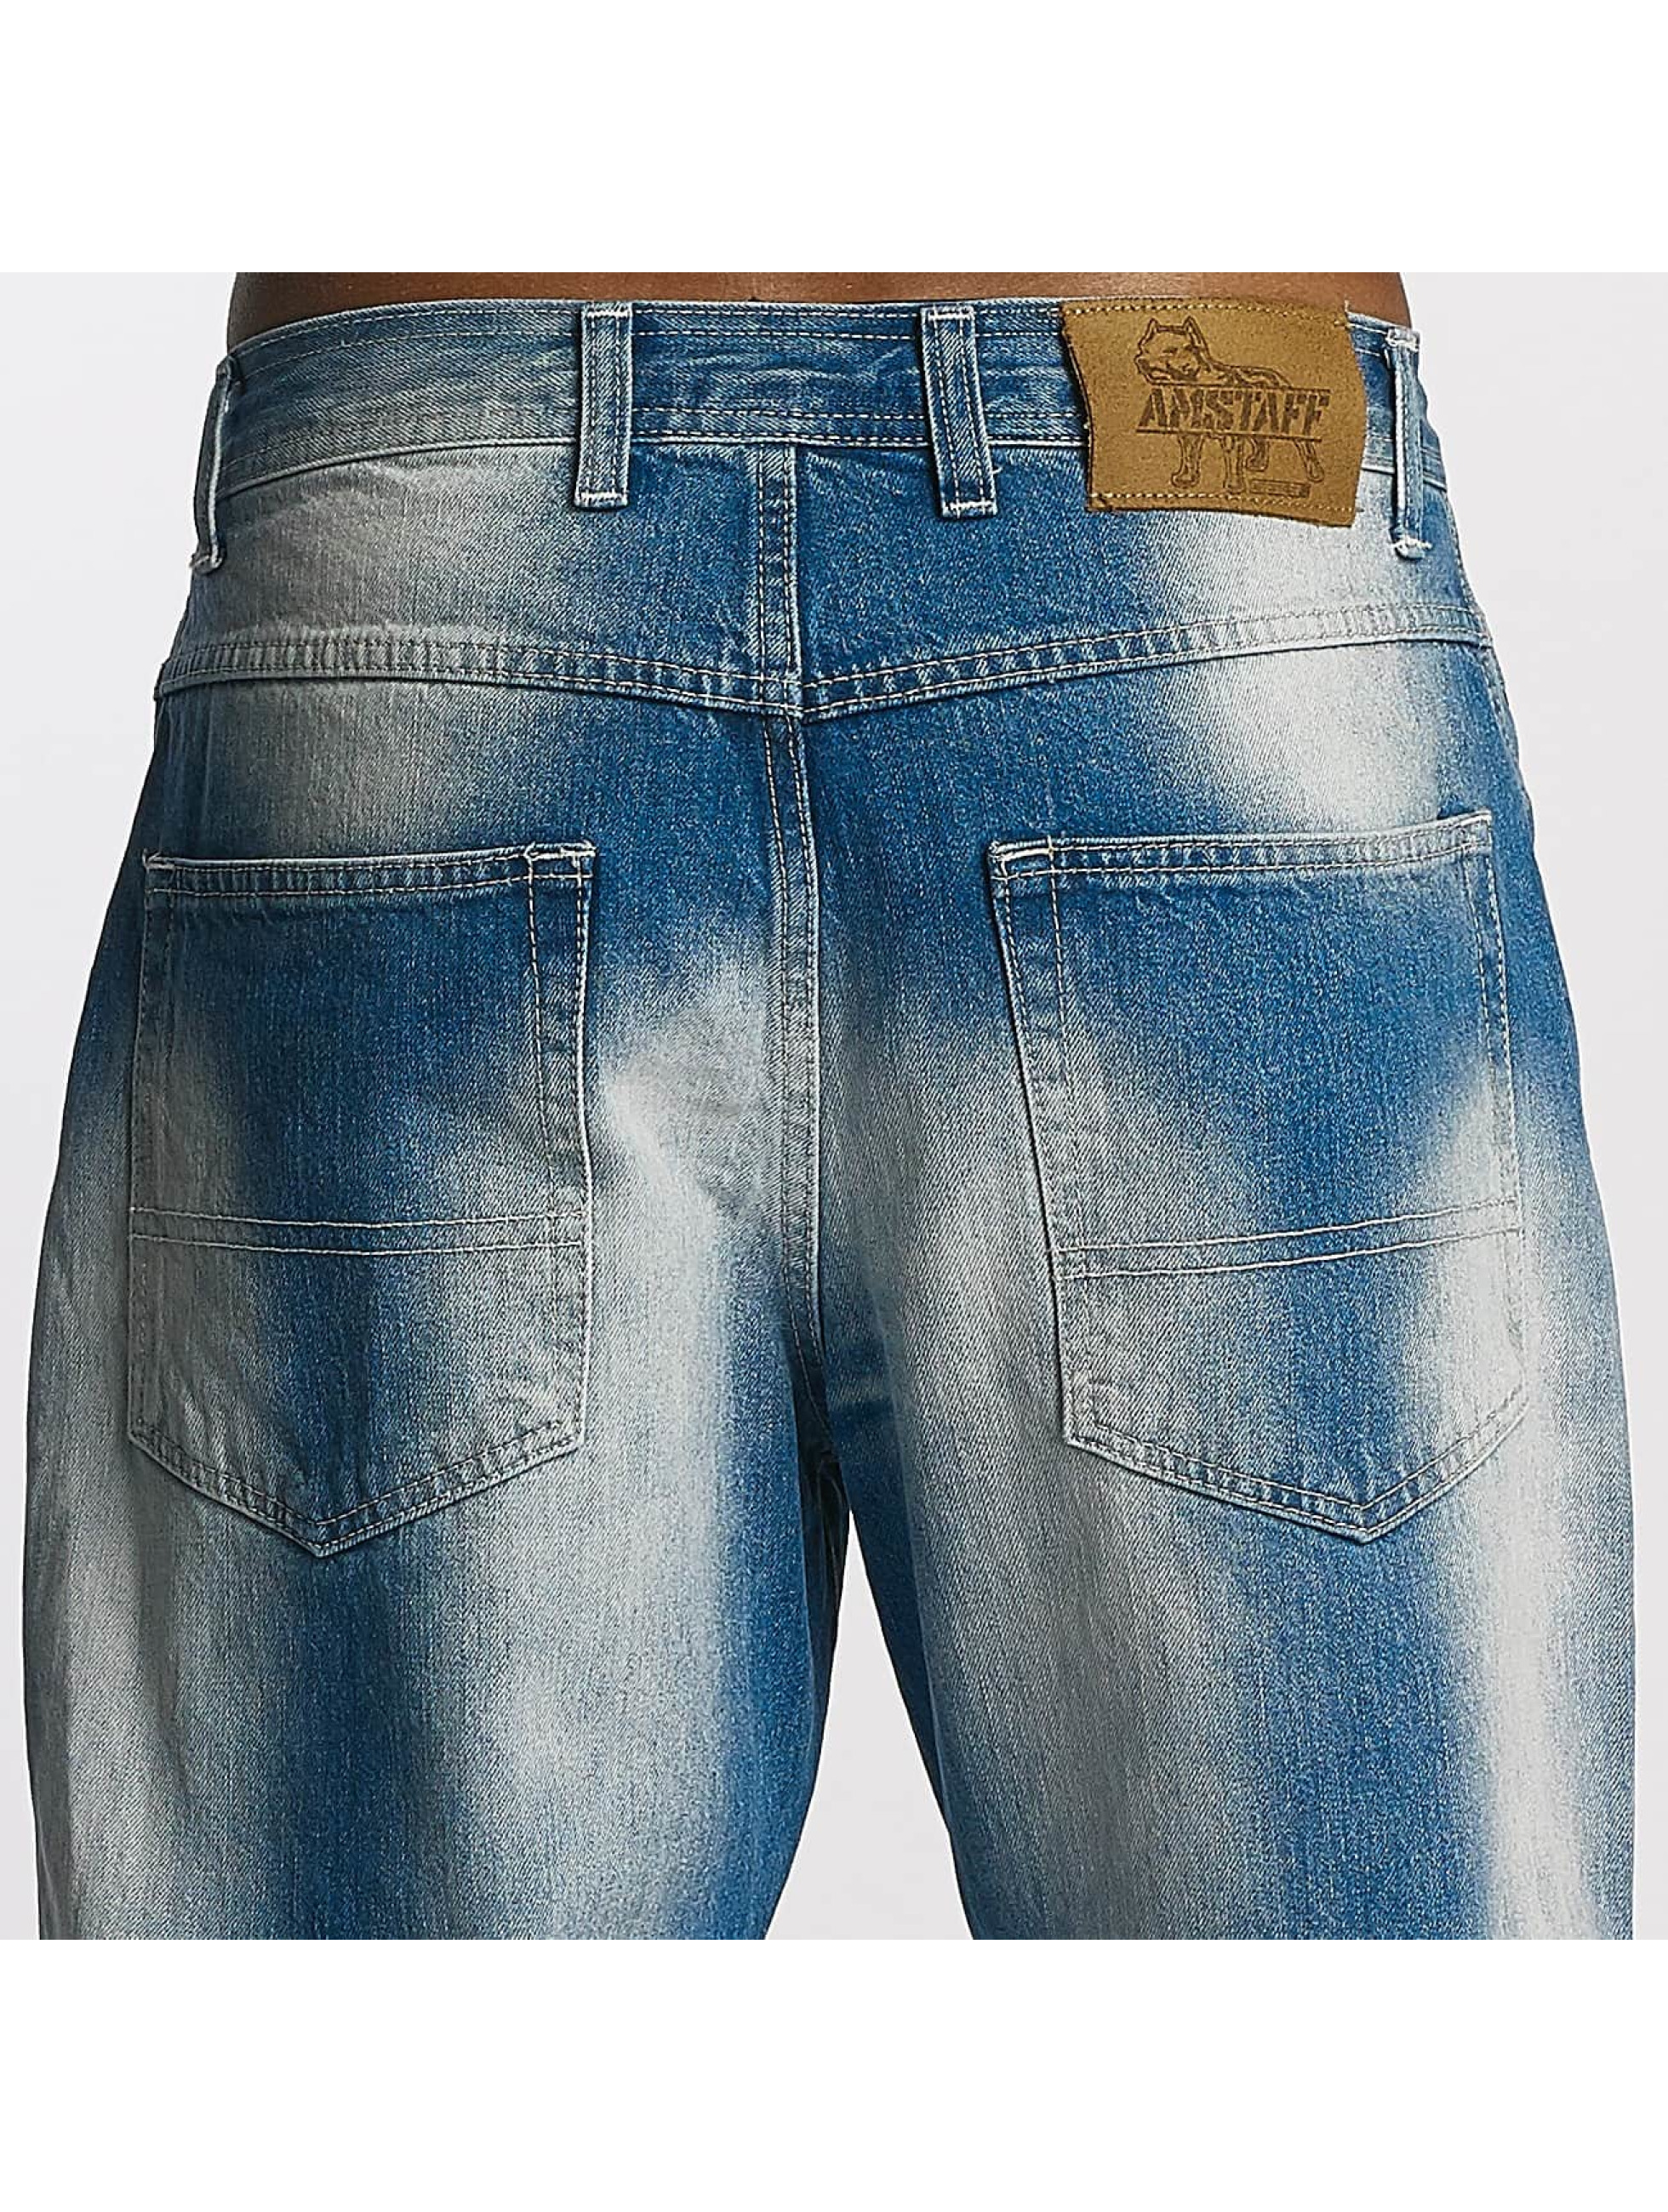 Amstaff Straight Fit Jeans Gecco blå